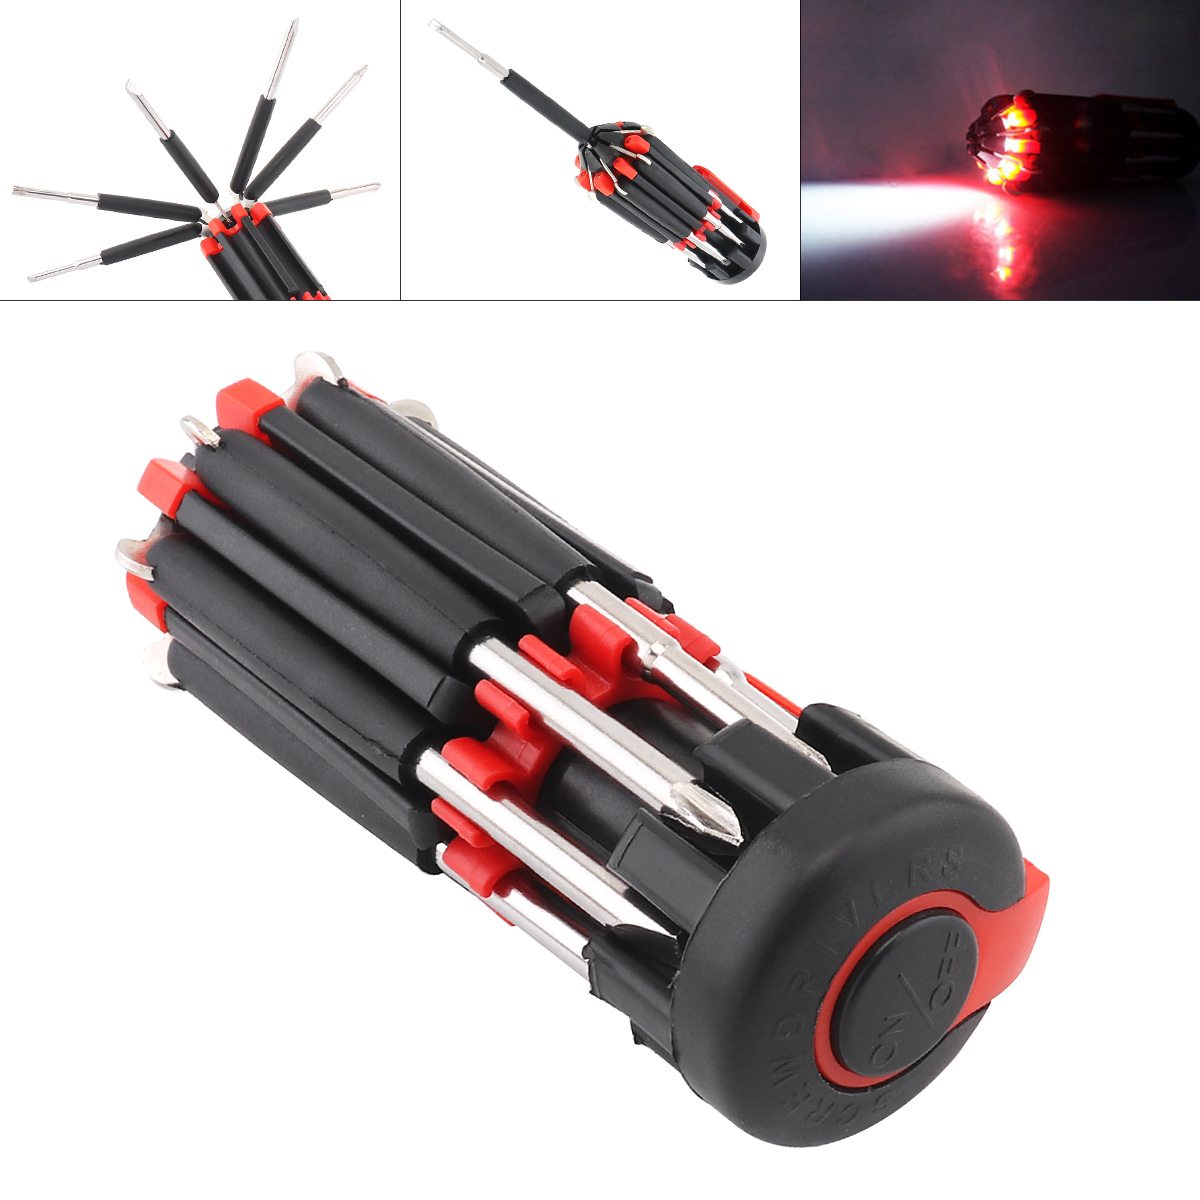 <font><b>8</b></font> <font><b>in</b></font> <font><b>1</b></font> Multifunction <font><b>Screwdriver</b></font> Set Hand Repair Tools Multi Screw Driver with LED <font><b>Flashlight</b></font> Torch for Home Appliance Car image